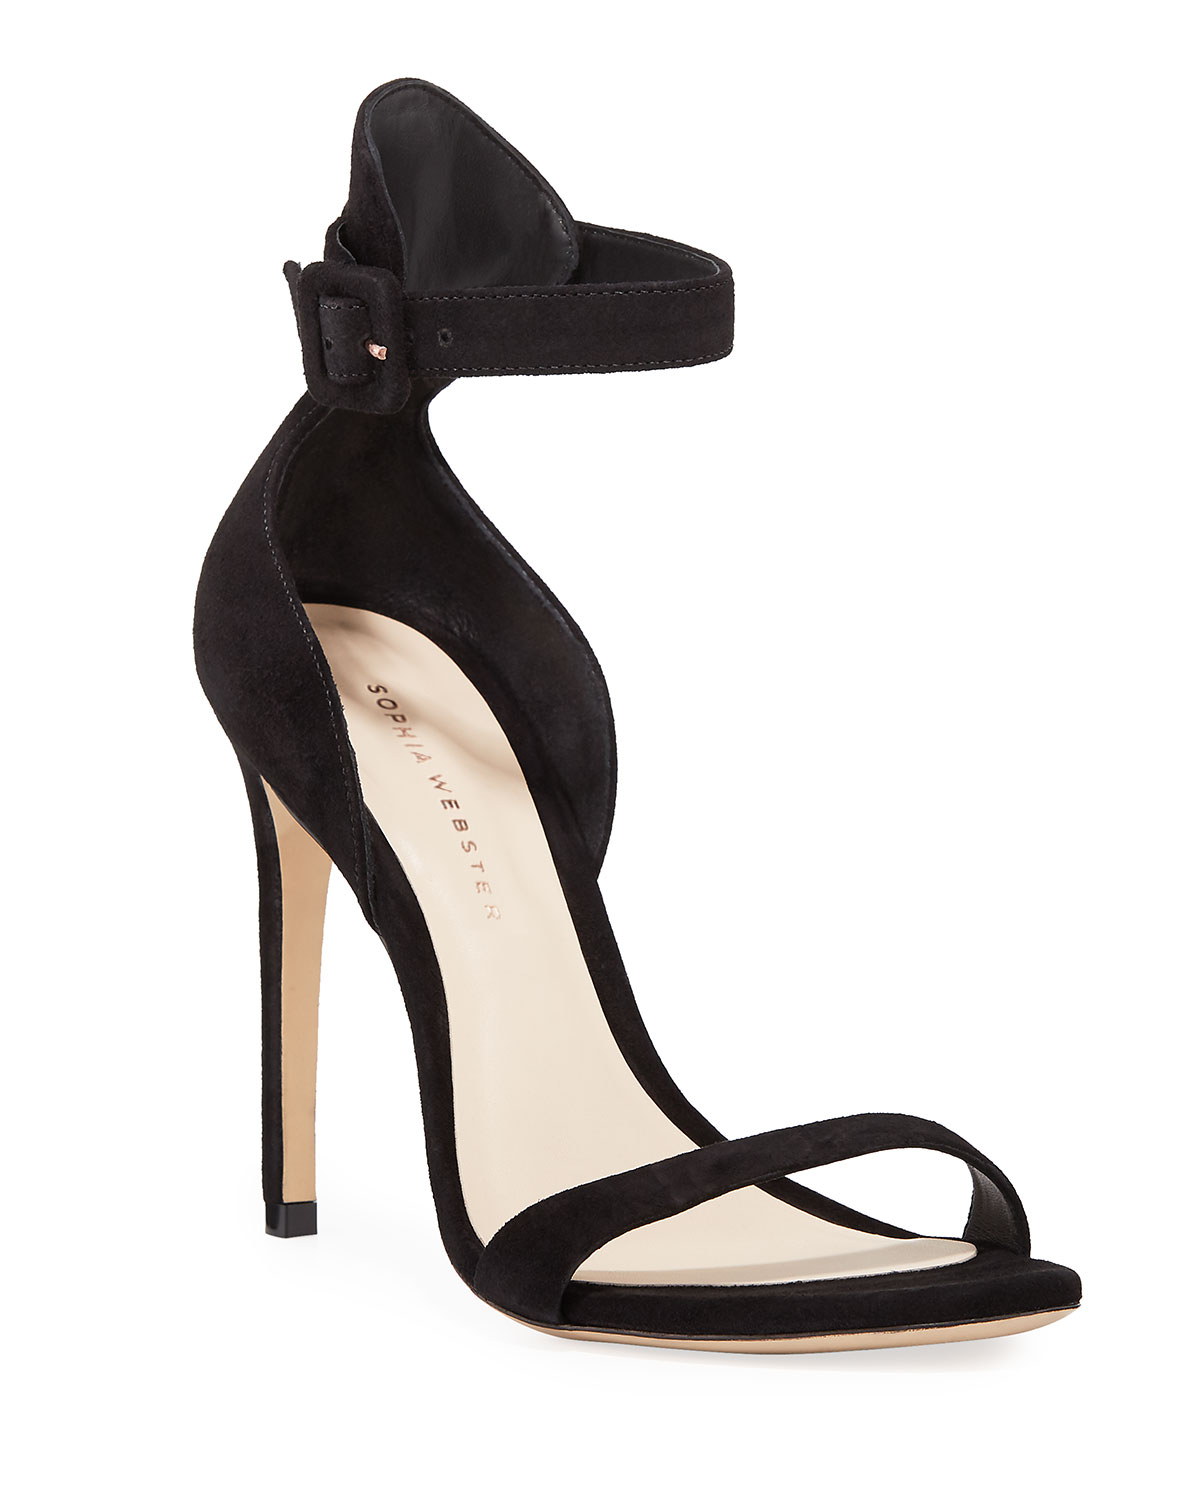 Nicole Naked High-Heel Suede Ankle-Wrap Sandals